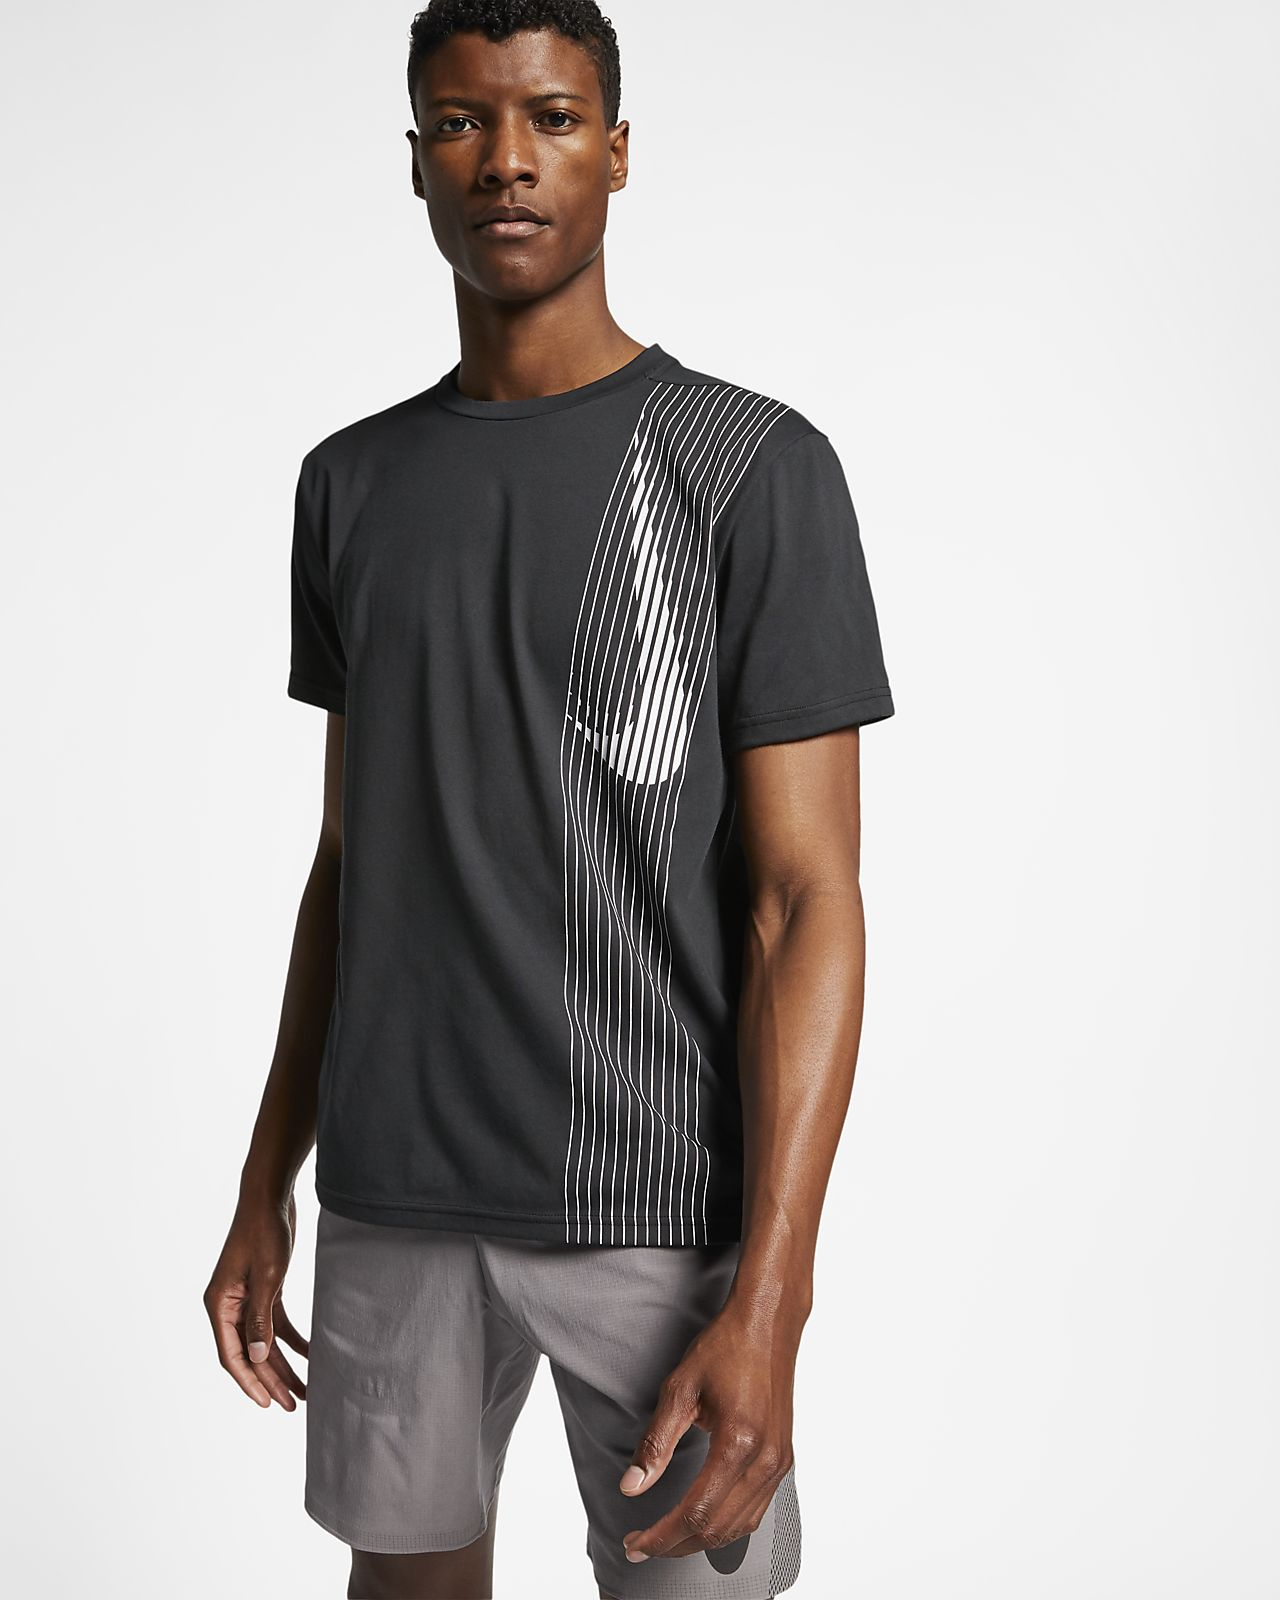 Nike Dri-FIT Trainingstop met korte mouwen voor heren